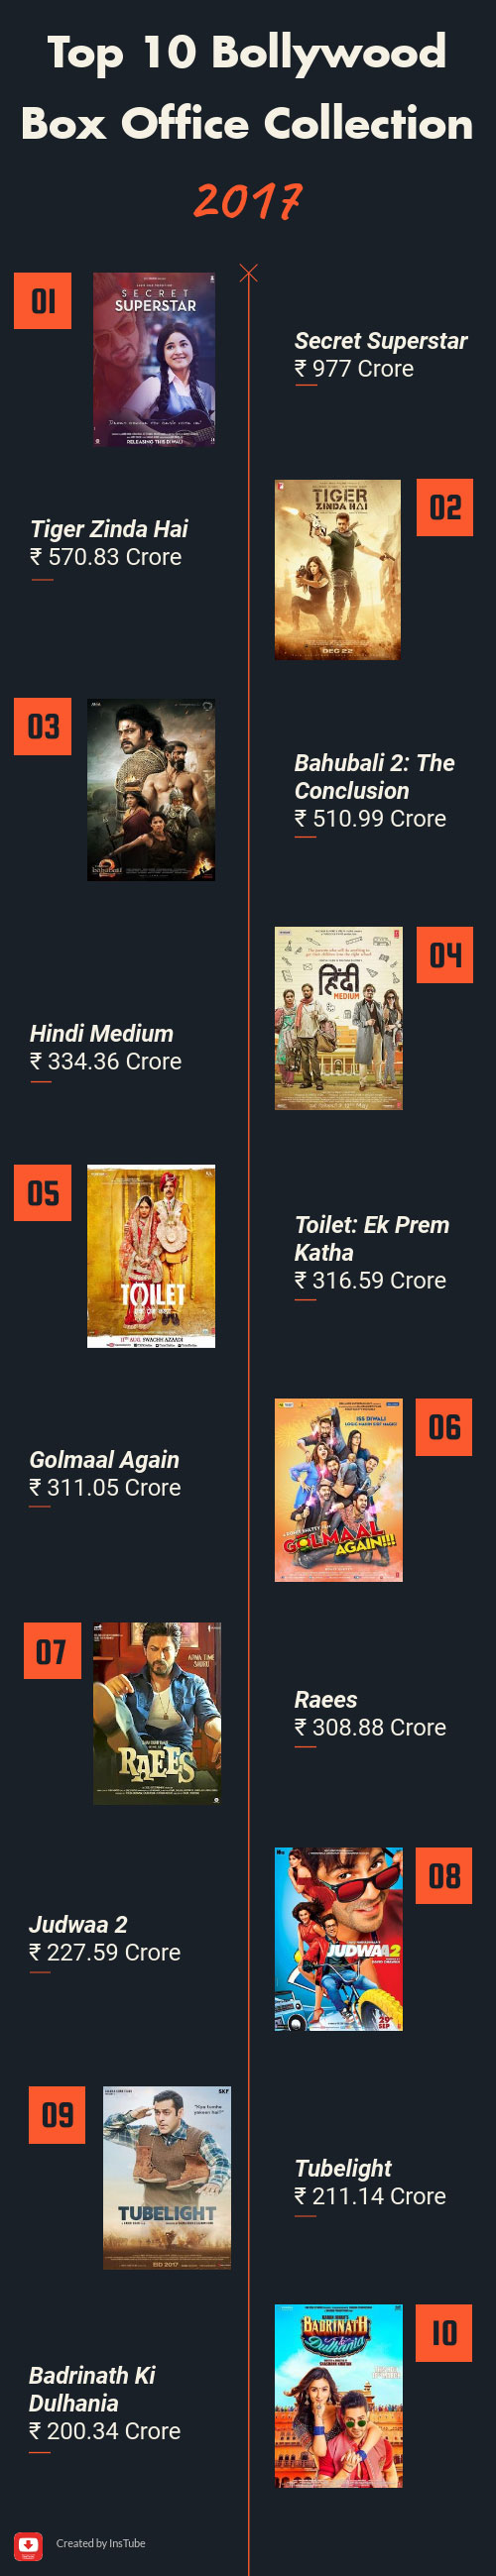 top 10 Bollywood box office collection 2017